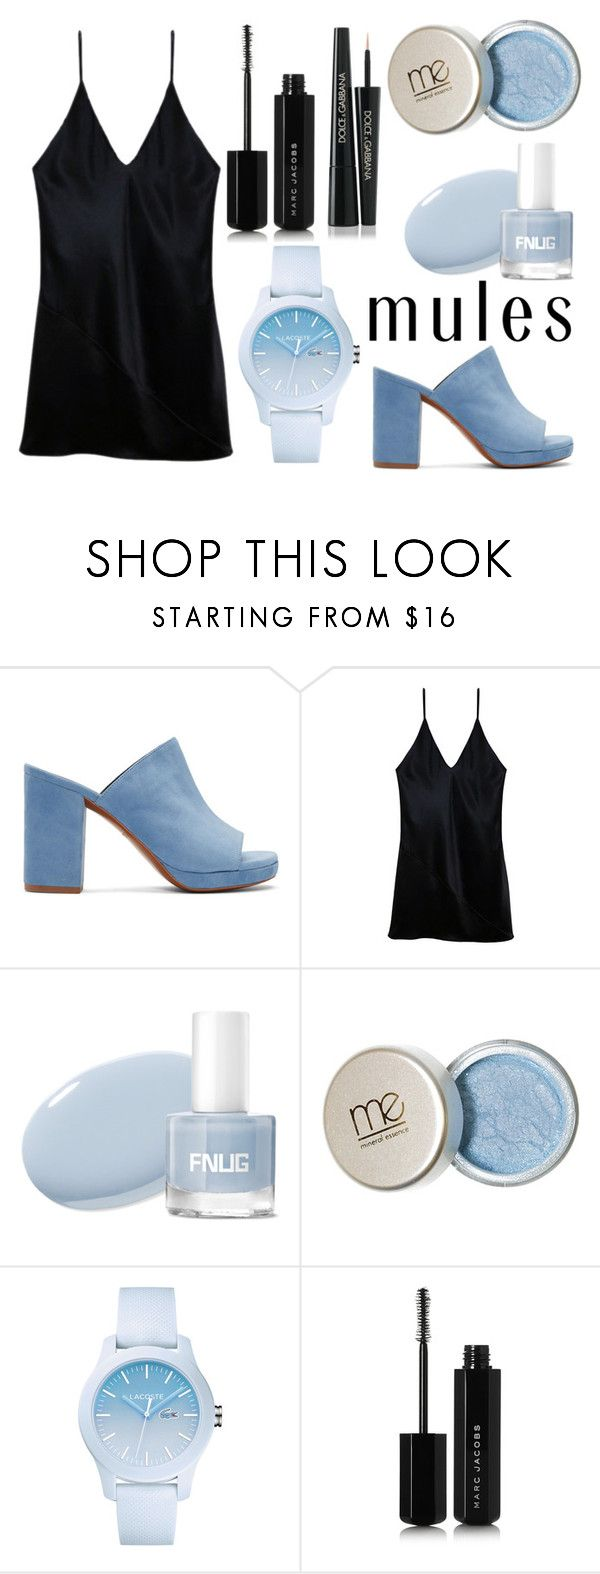 """mules ll"" by ajdallas ❤ liked on Polyvore featuring Robert Clergerie, Fleur du Mal, Lacoste, Marc Jacobs, Dolce&Gabbana and mules"